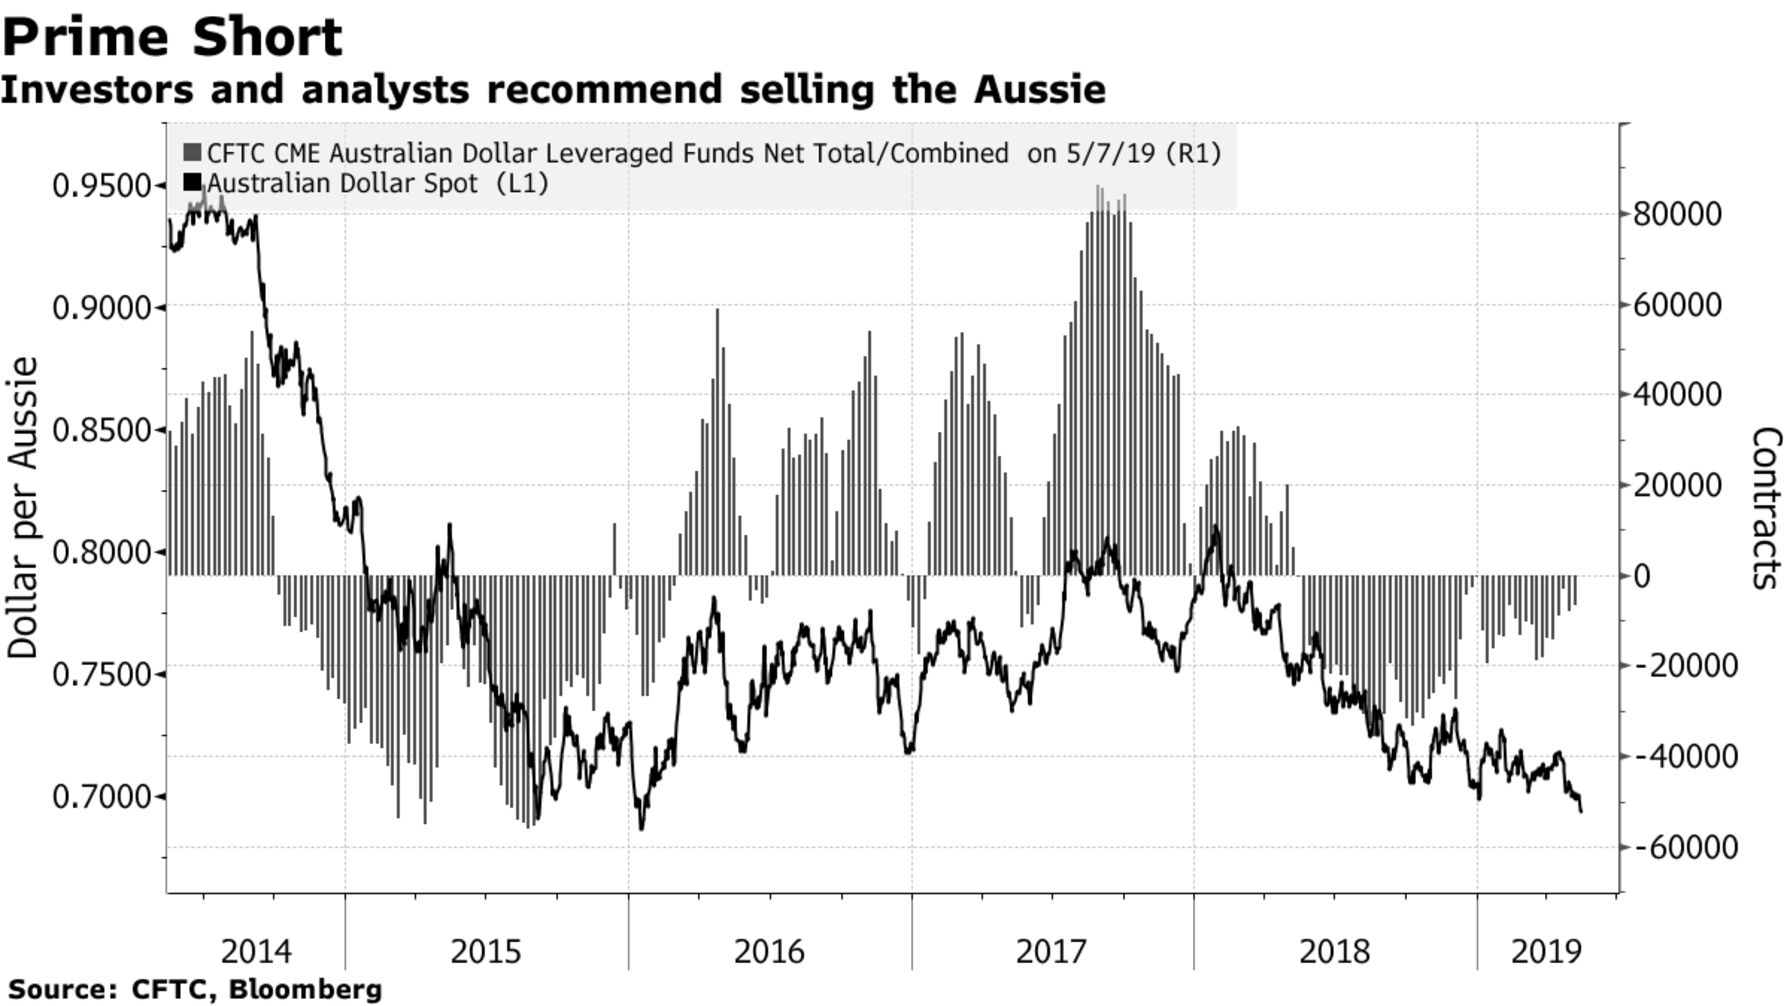 Investors and analysts recommend selling the Aussie